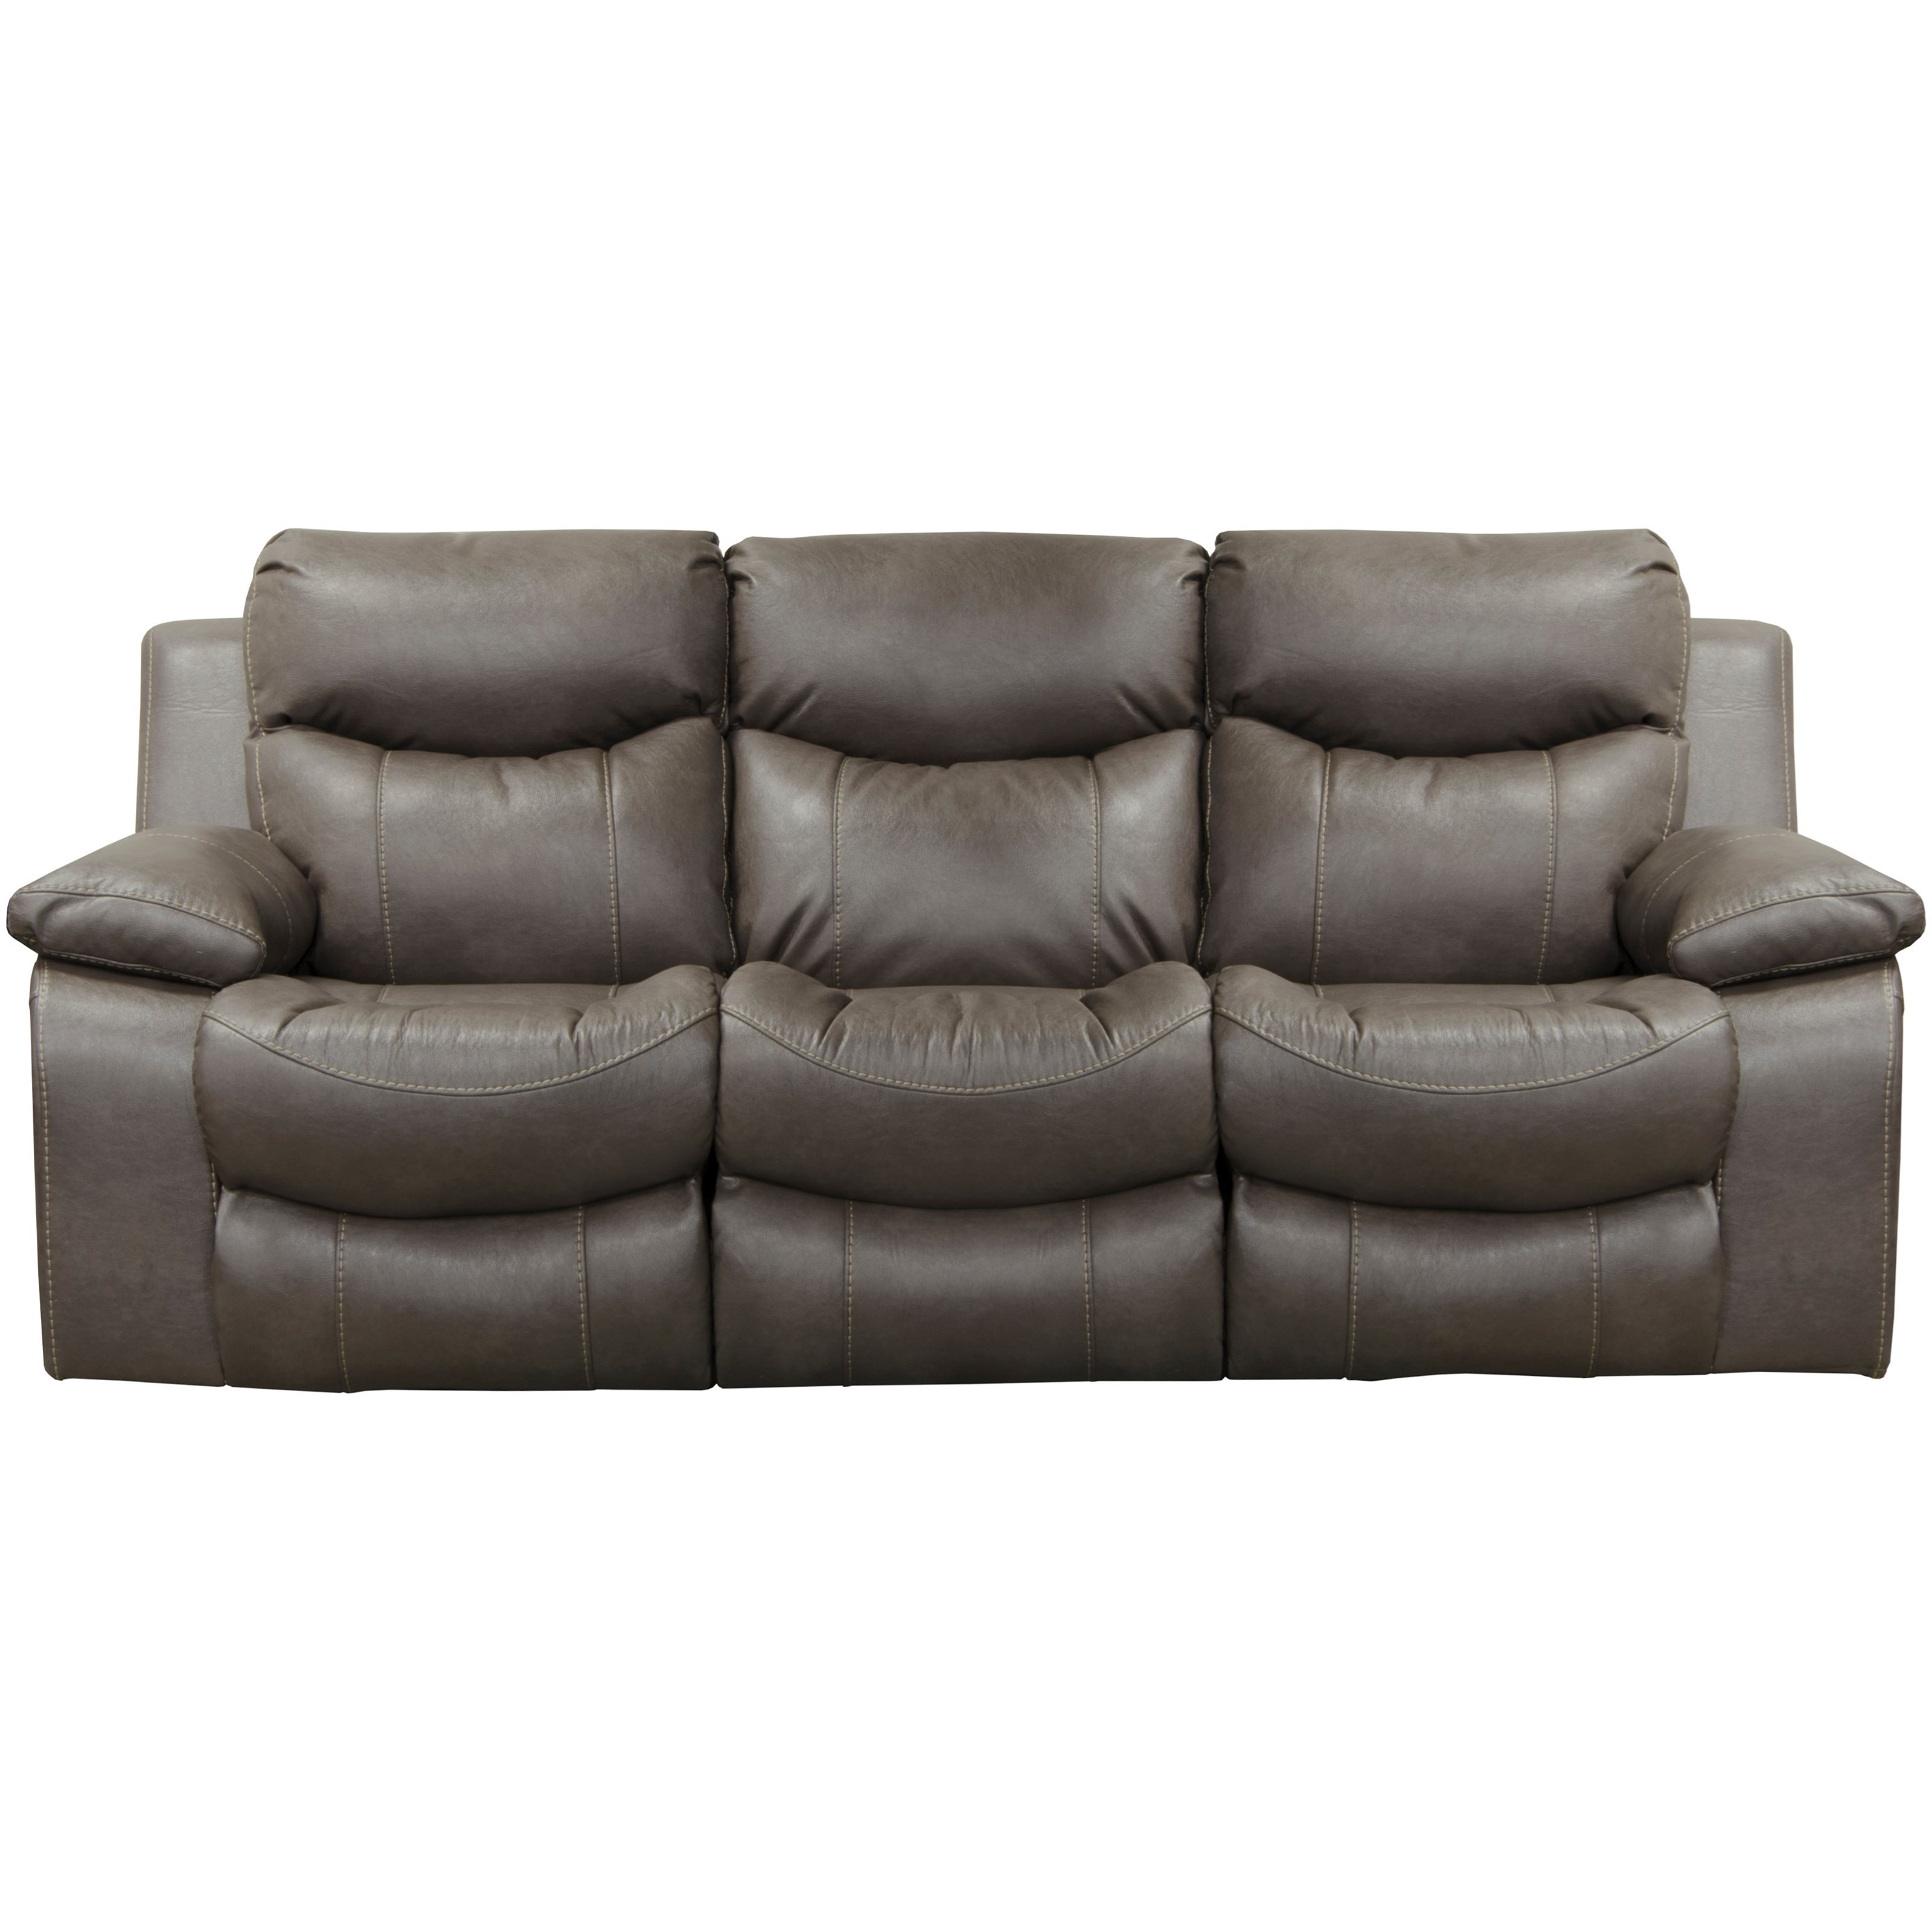 catnapper ranger reclining sectional sofa set normann copenhagen ace connor casual lay flat power with